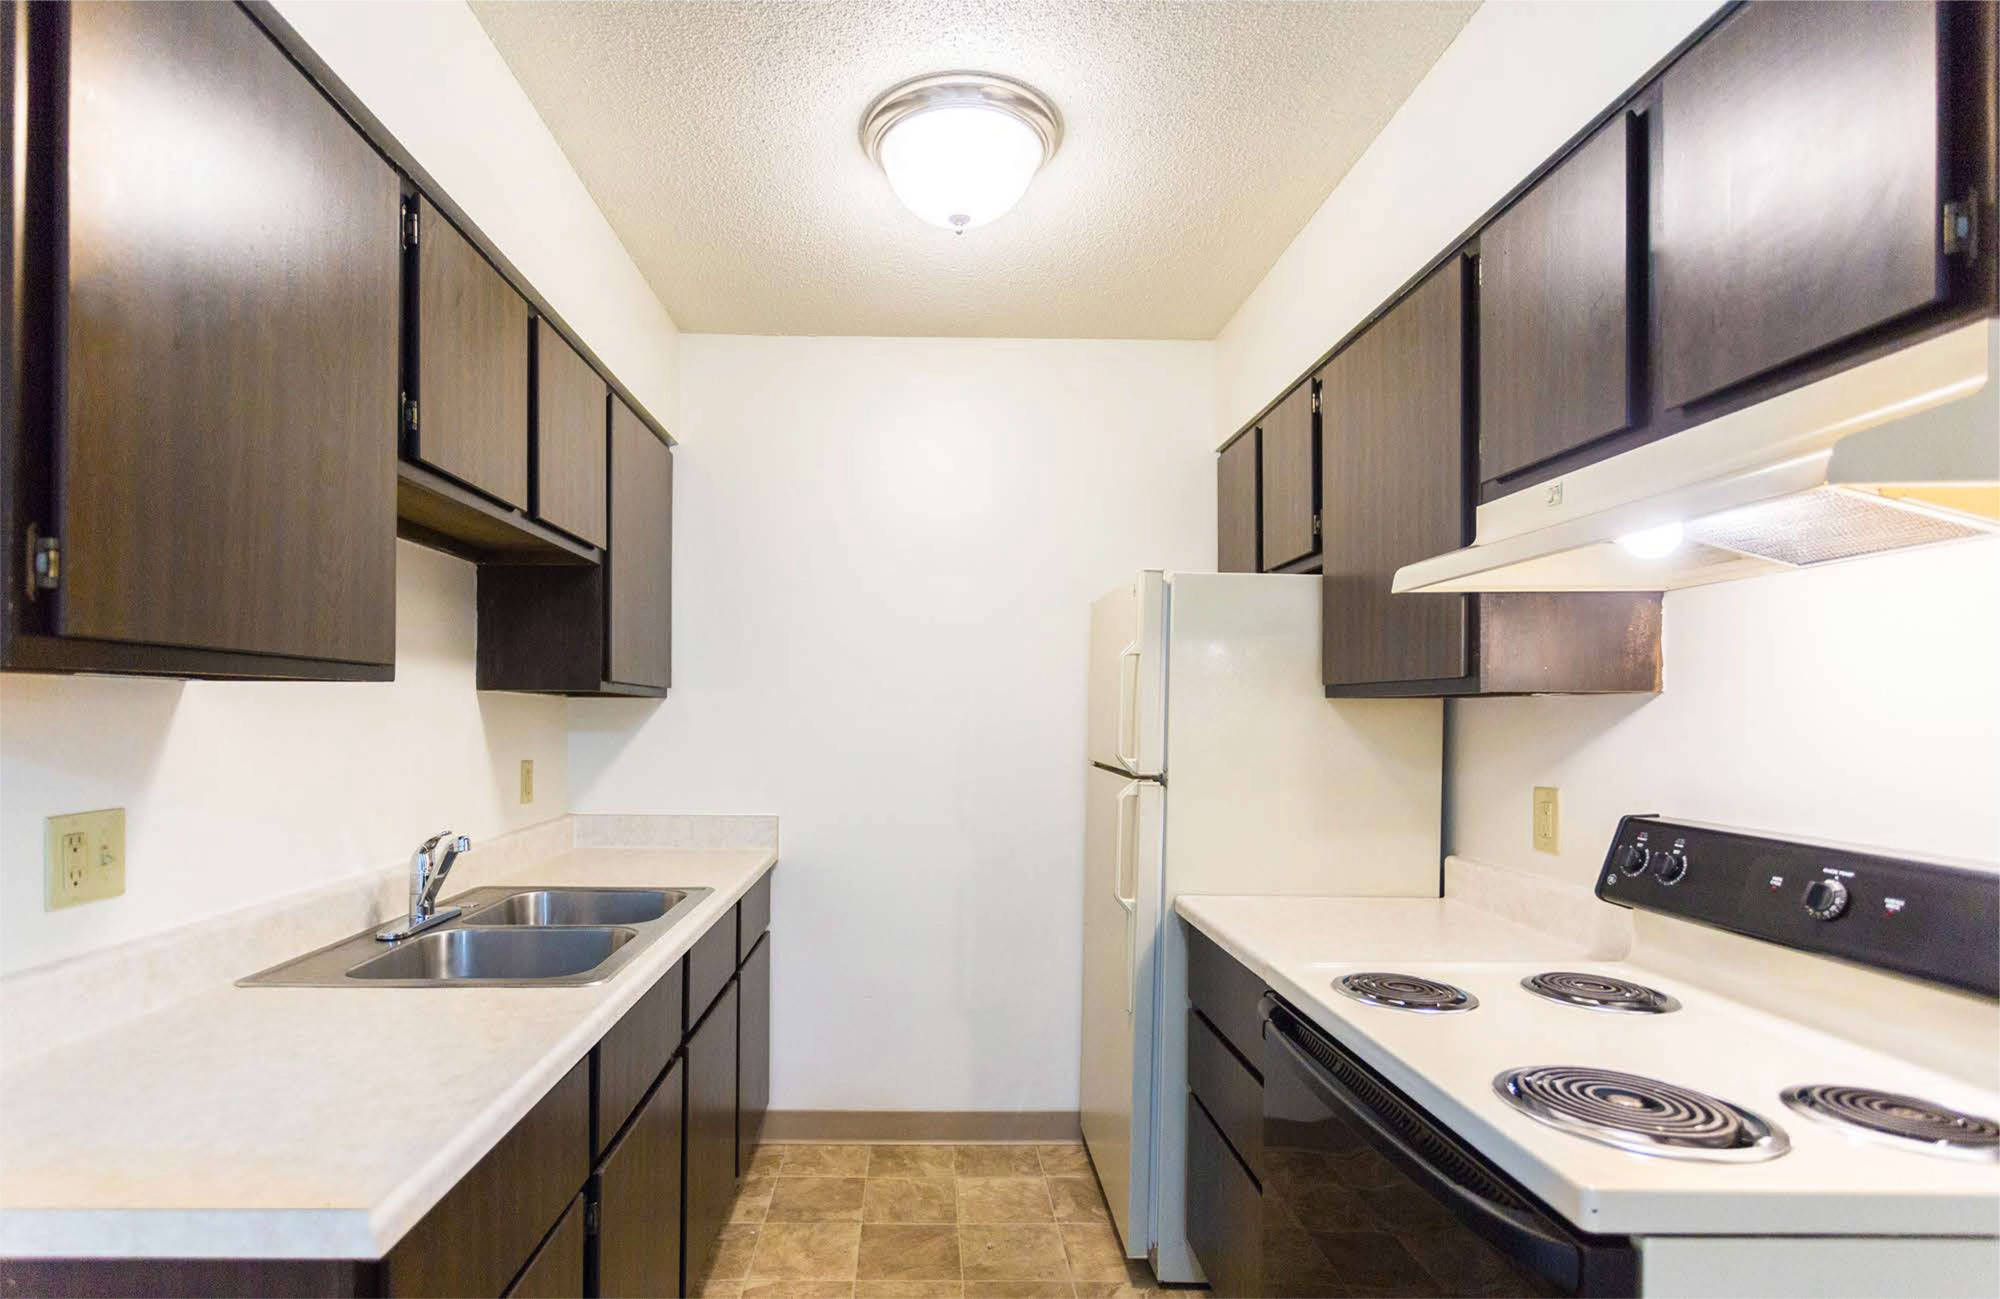 Kitchen with range, stove, refrigerator, sink and cabinets on both sides - Fairview Apartments in St. Peter, MN